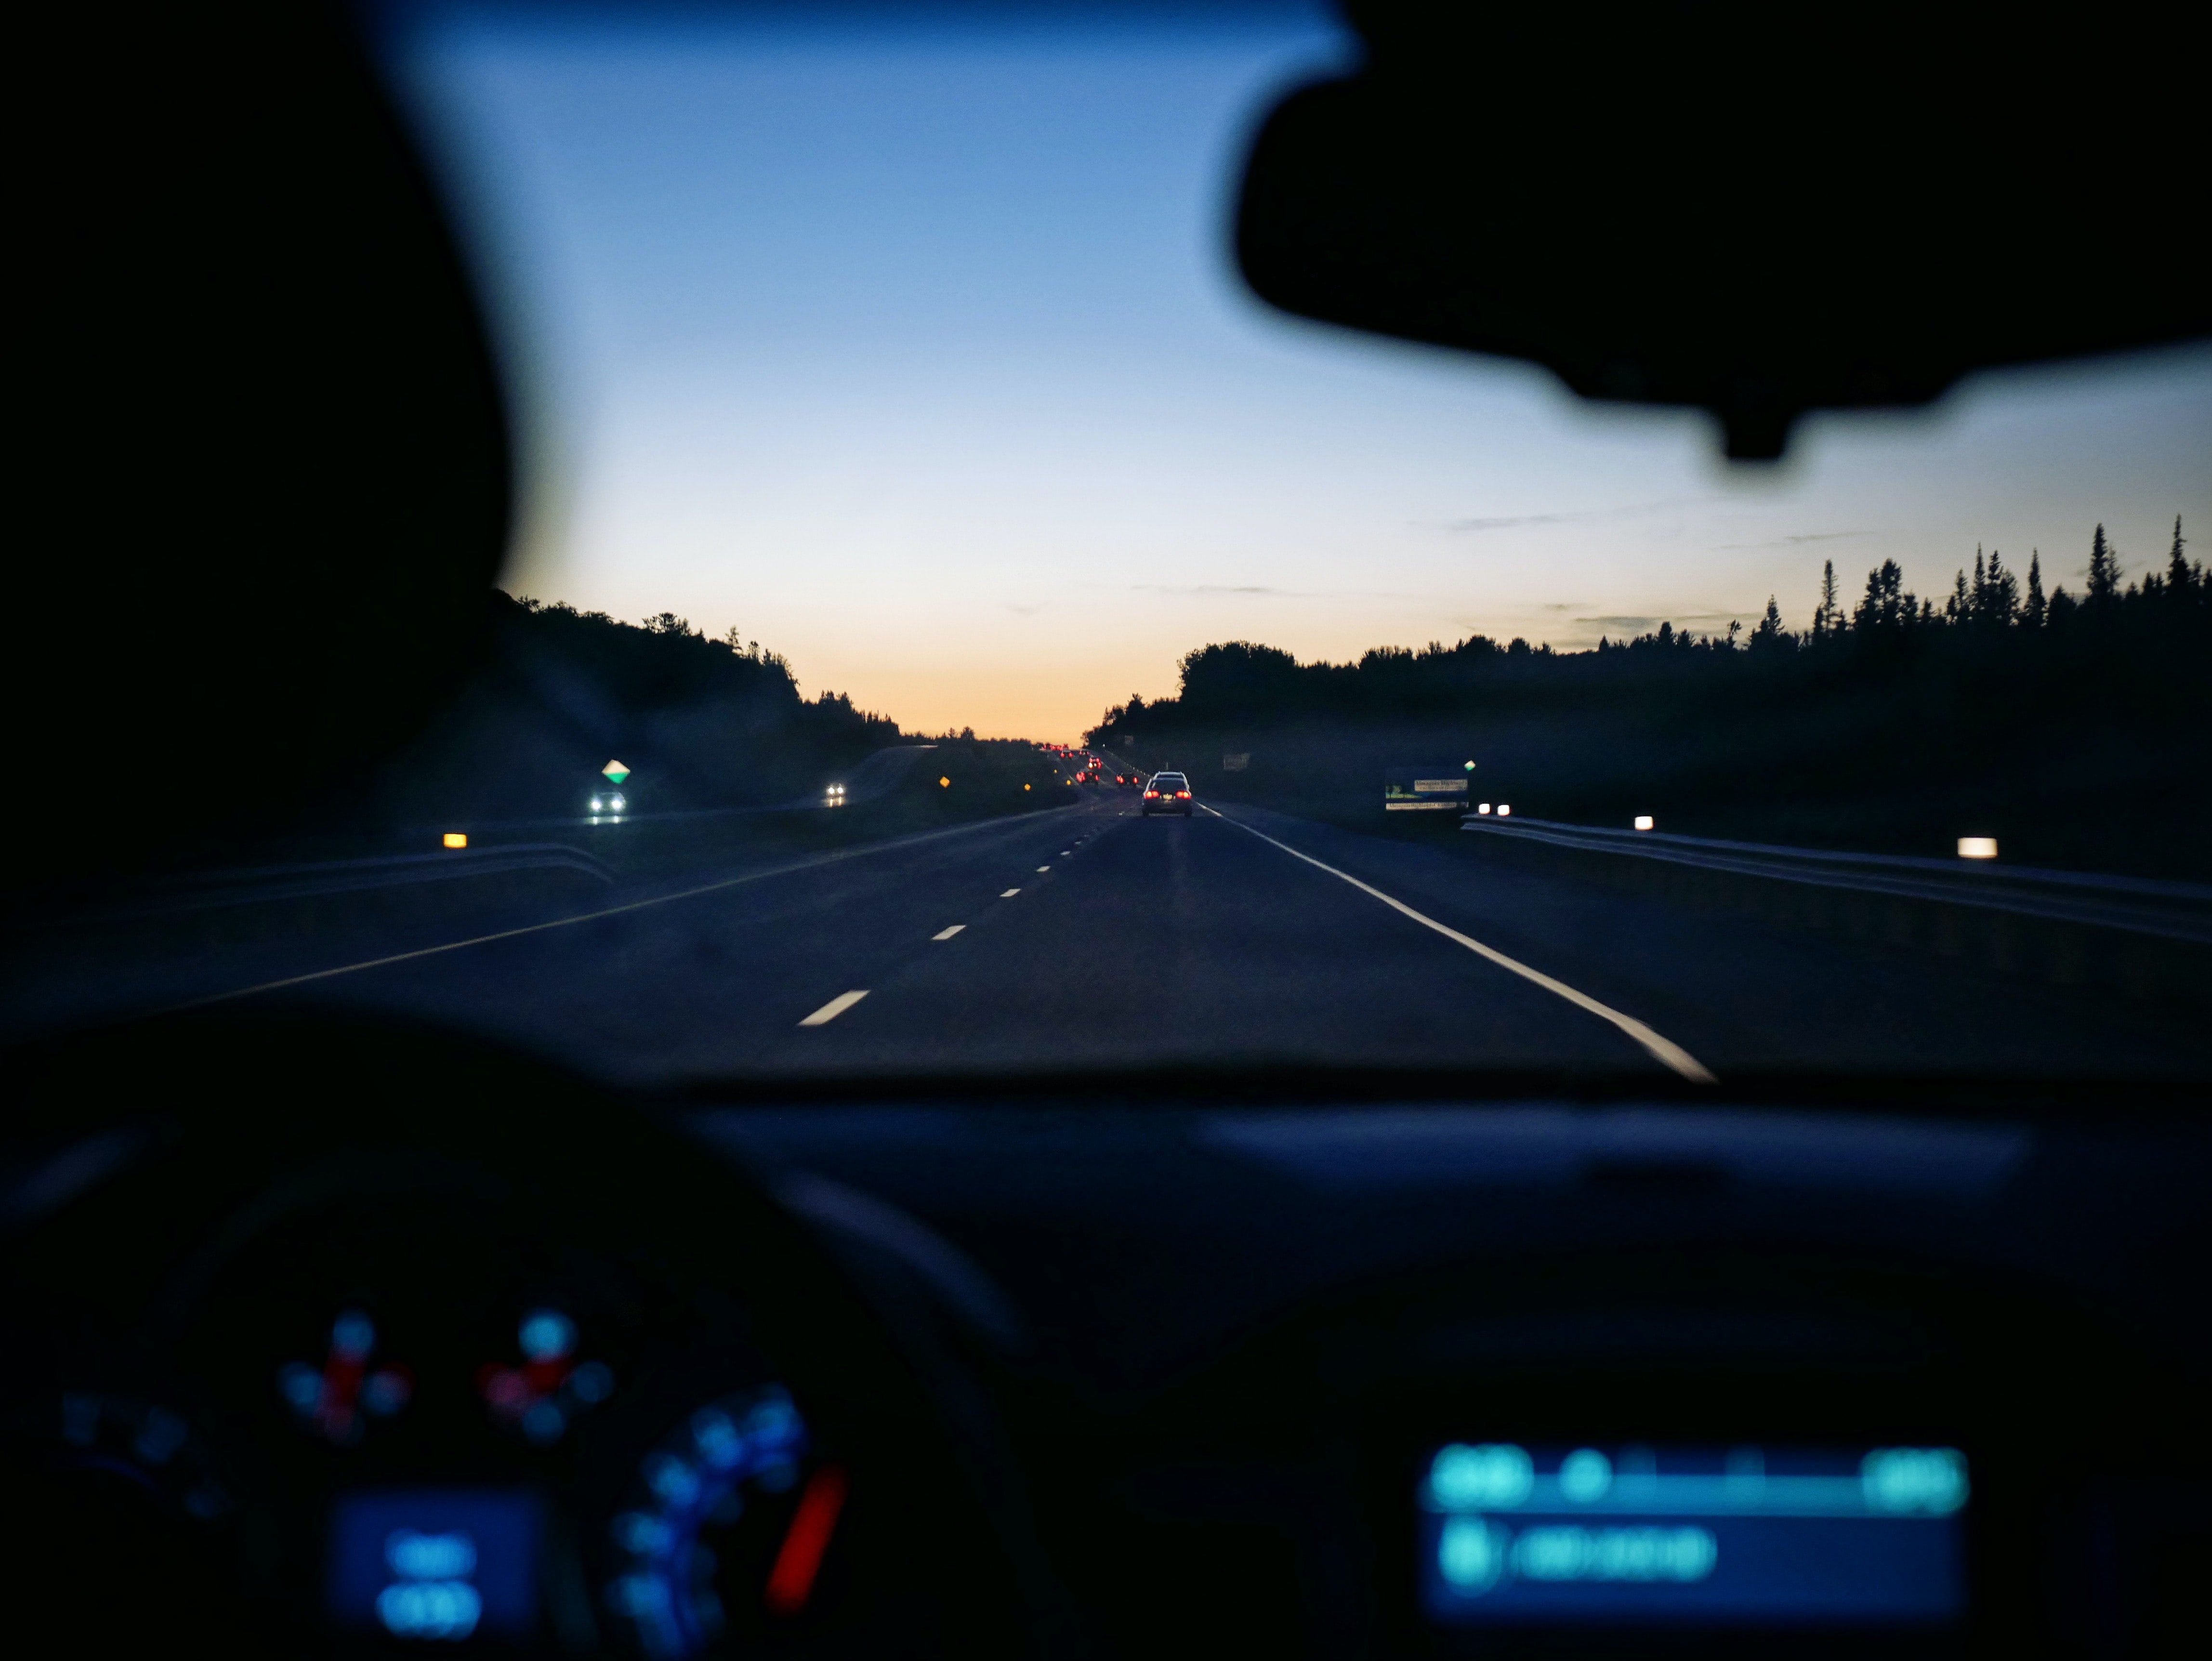 Car driving on a highway | Source: Unsplash